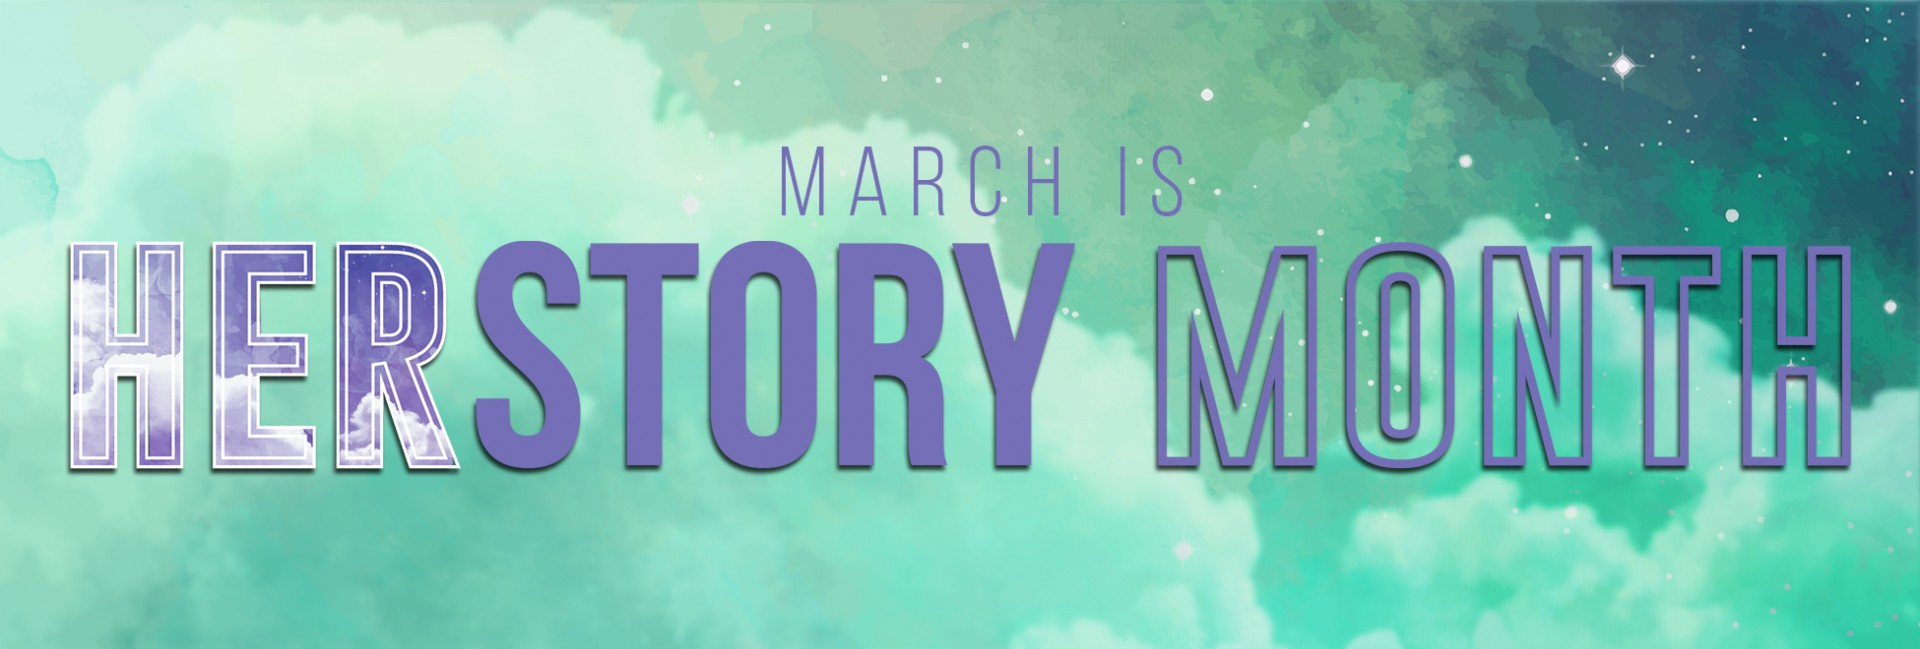 Womens Herstory Month 2016